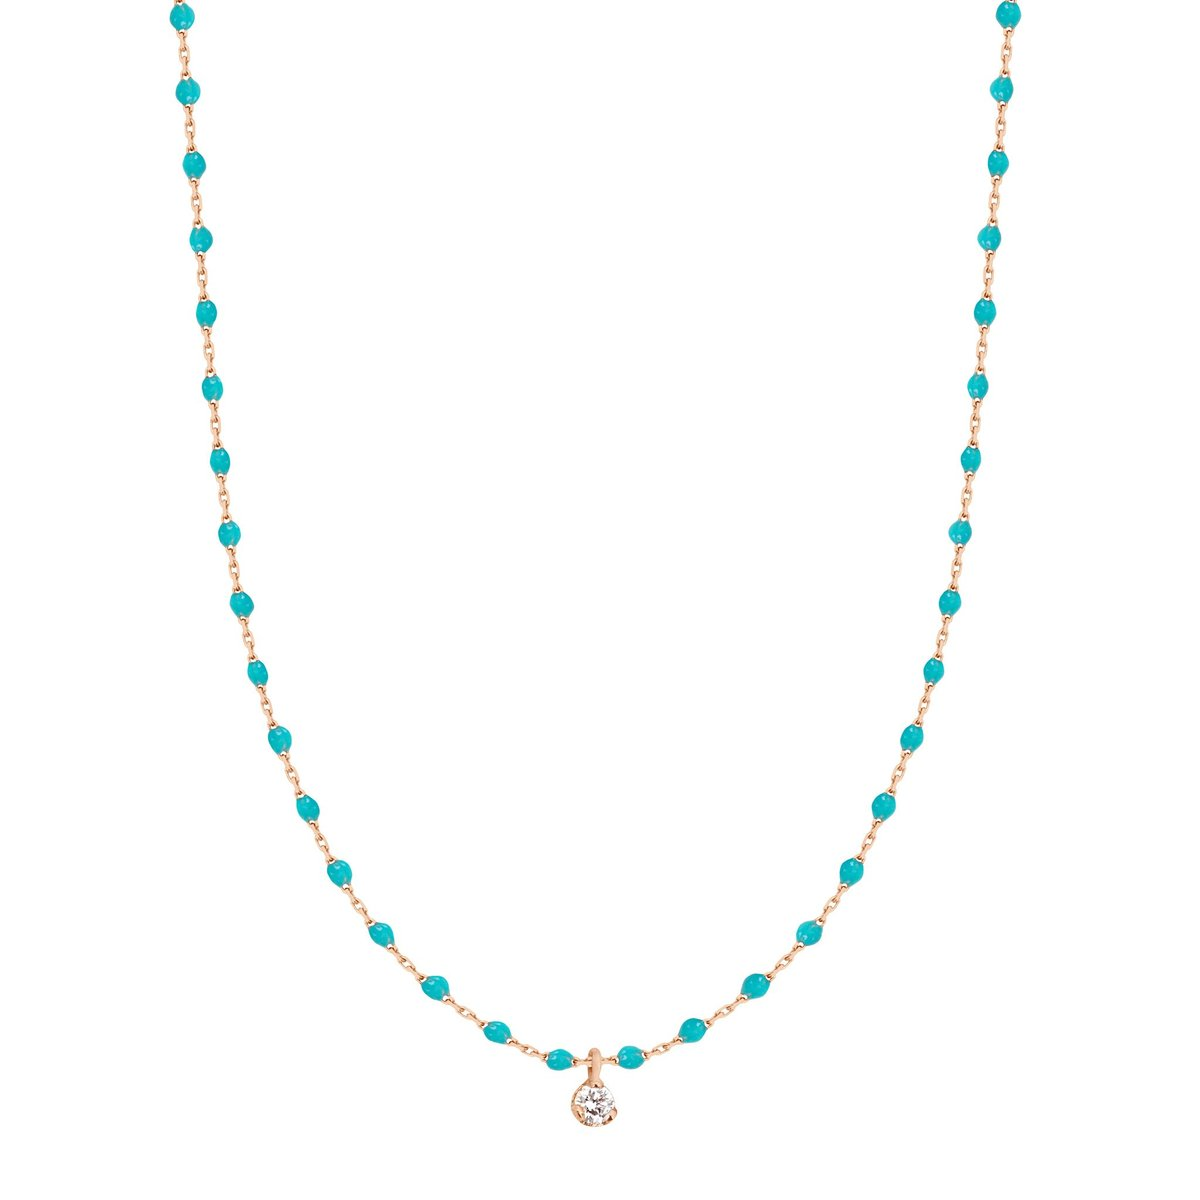 Gigi Clozeau Mini 1 Diamond Necklace - Turquoise Green - Necklaces - Broken English Jewelry